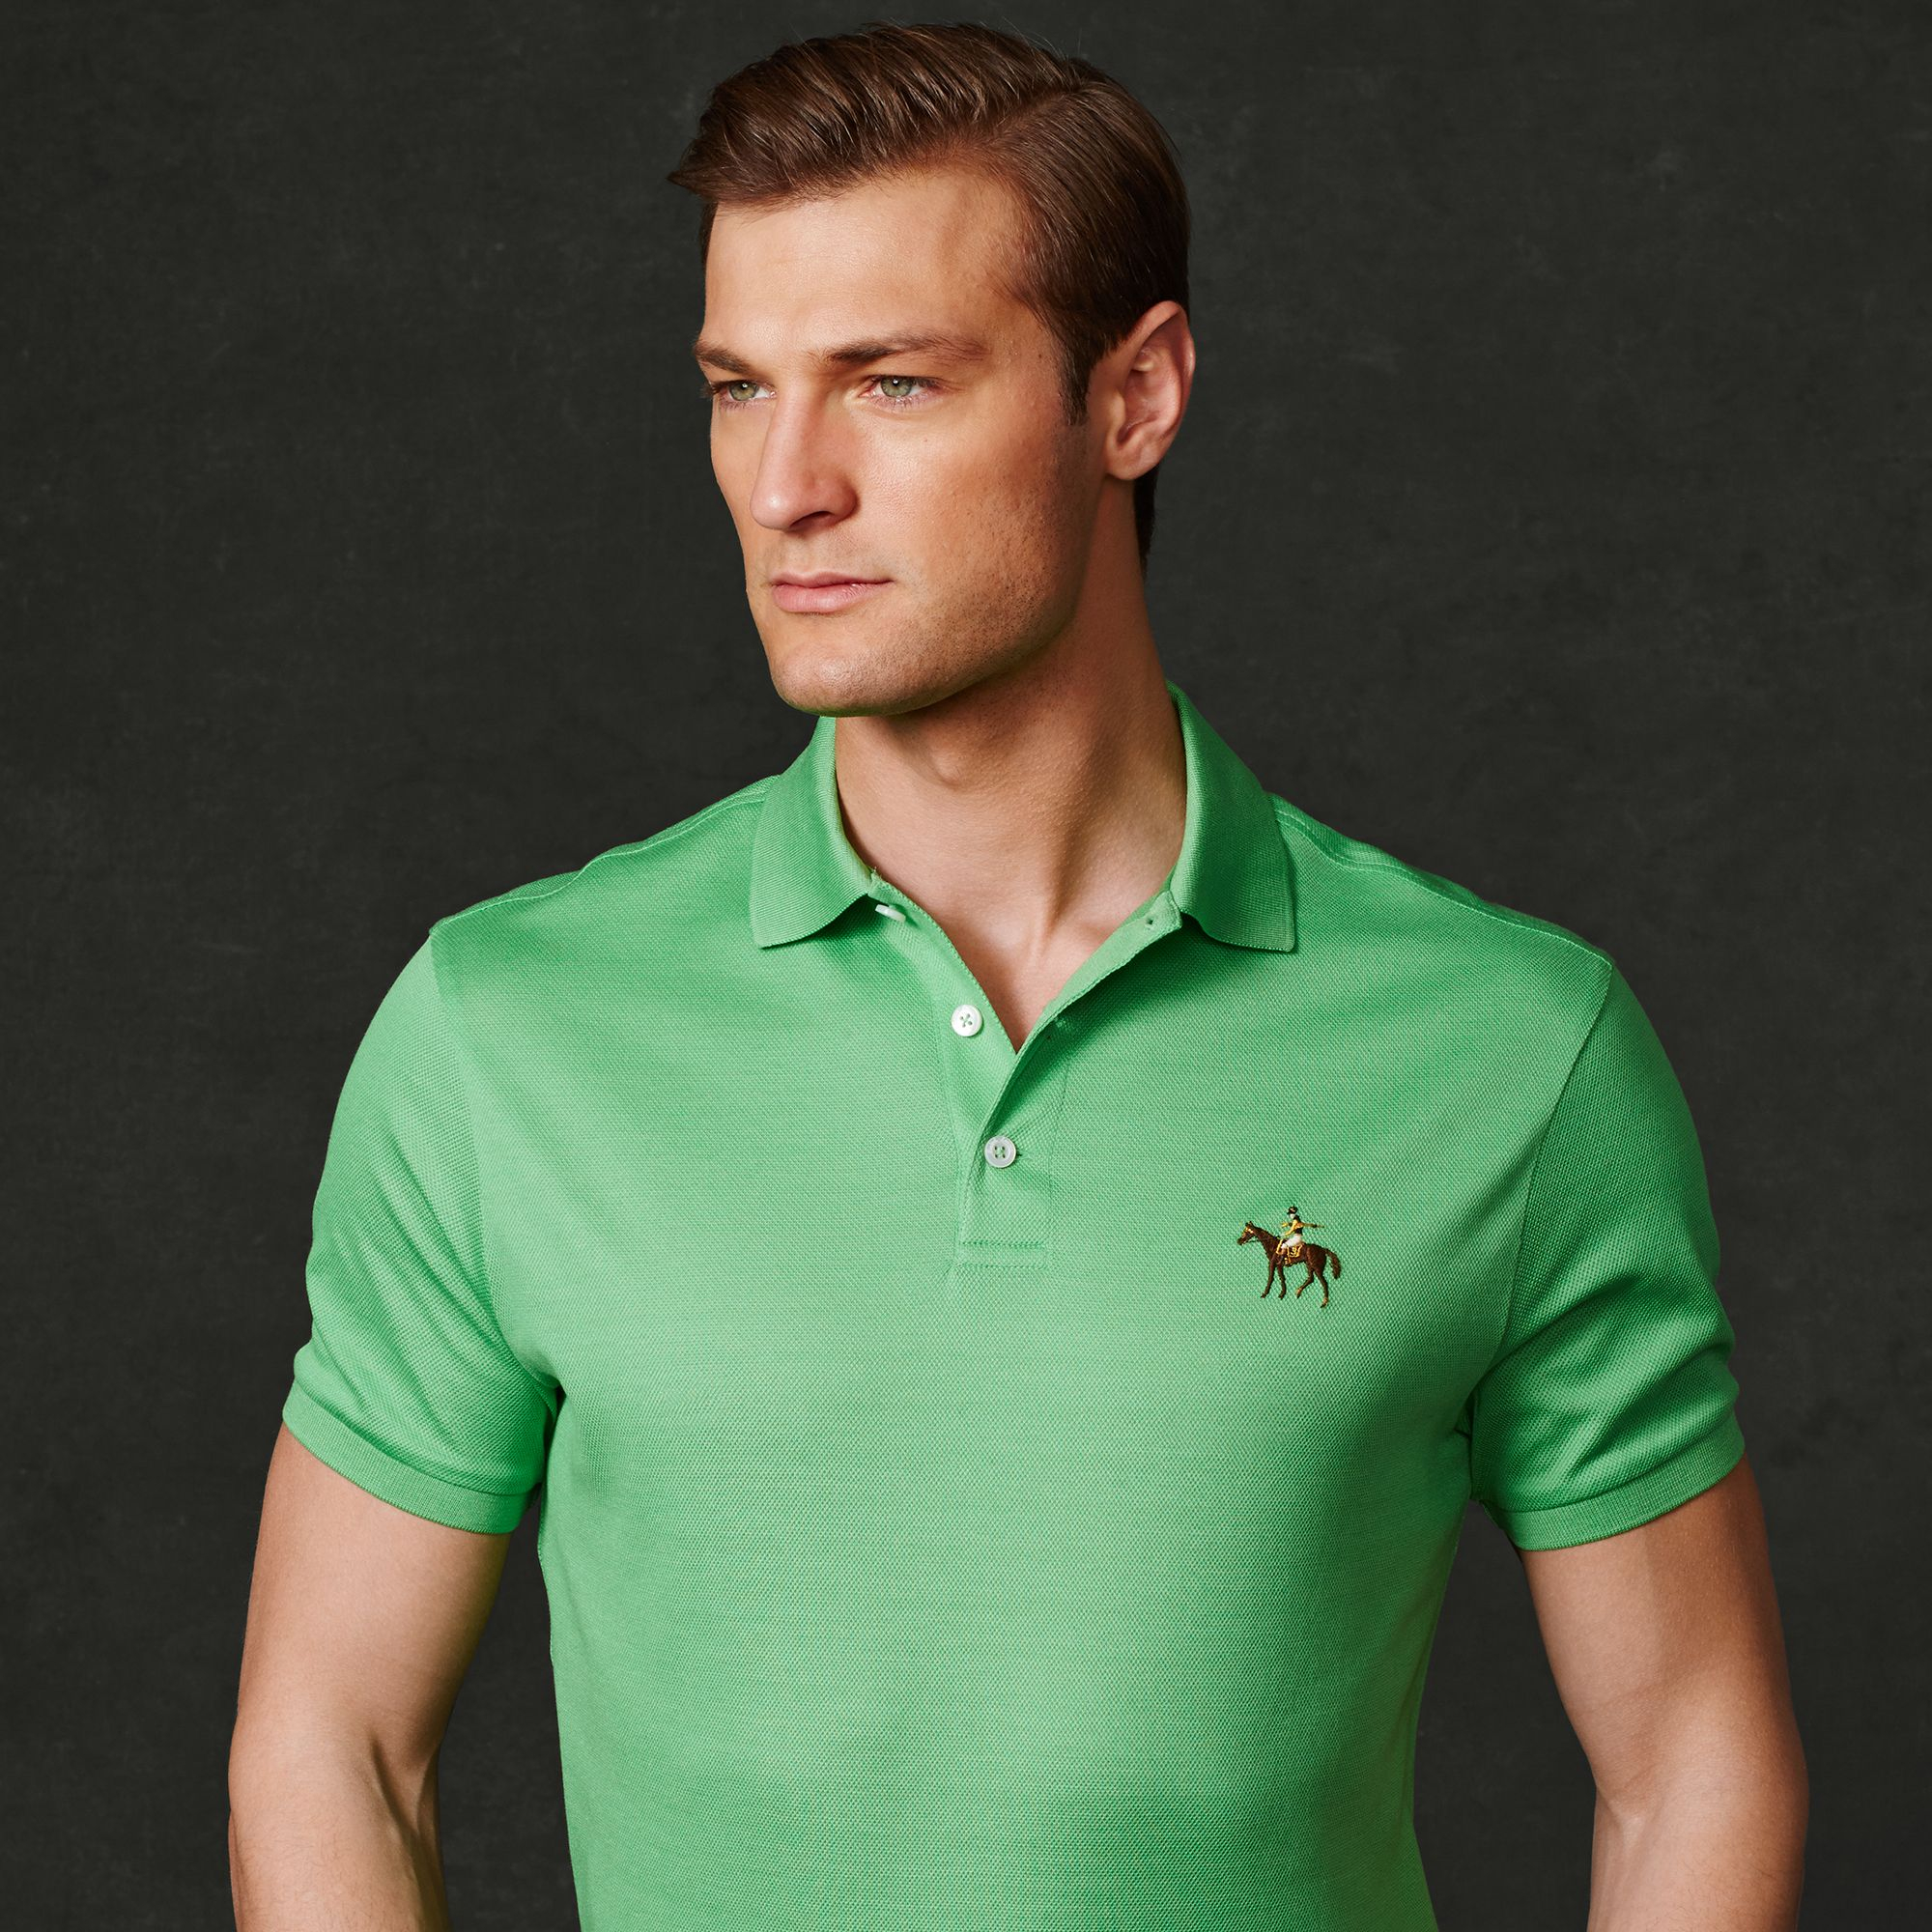 c33aab23 ... shop lyst ralph lauren purple label tailored fit pique polo in green  c84b1 94314